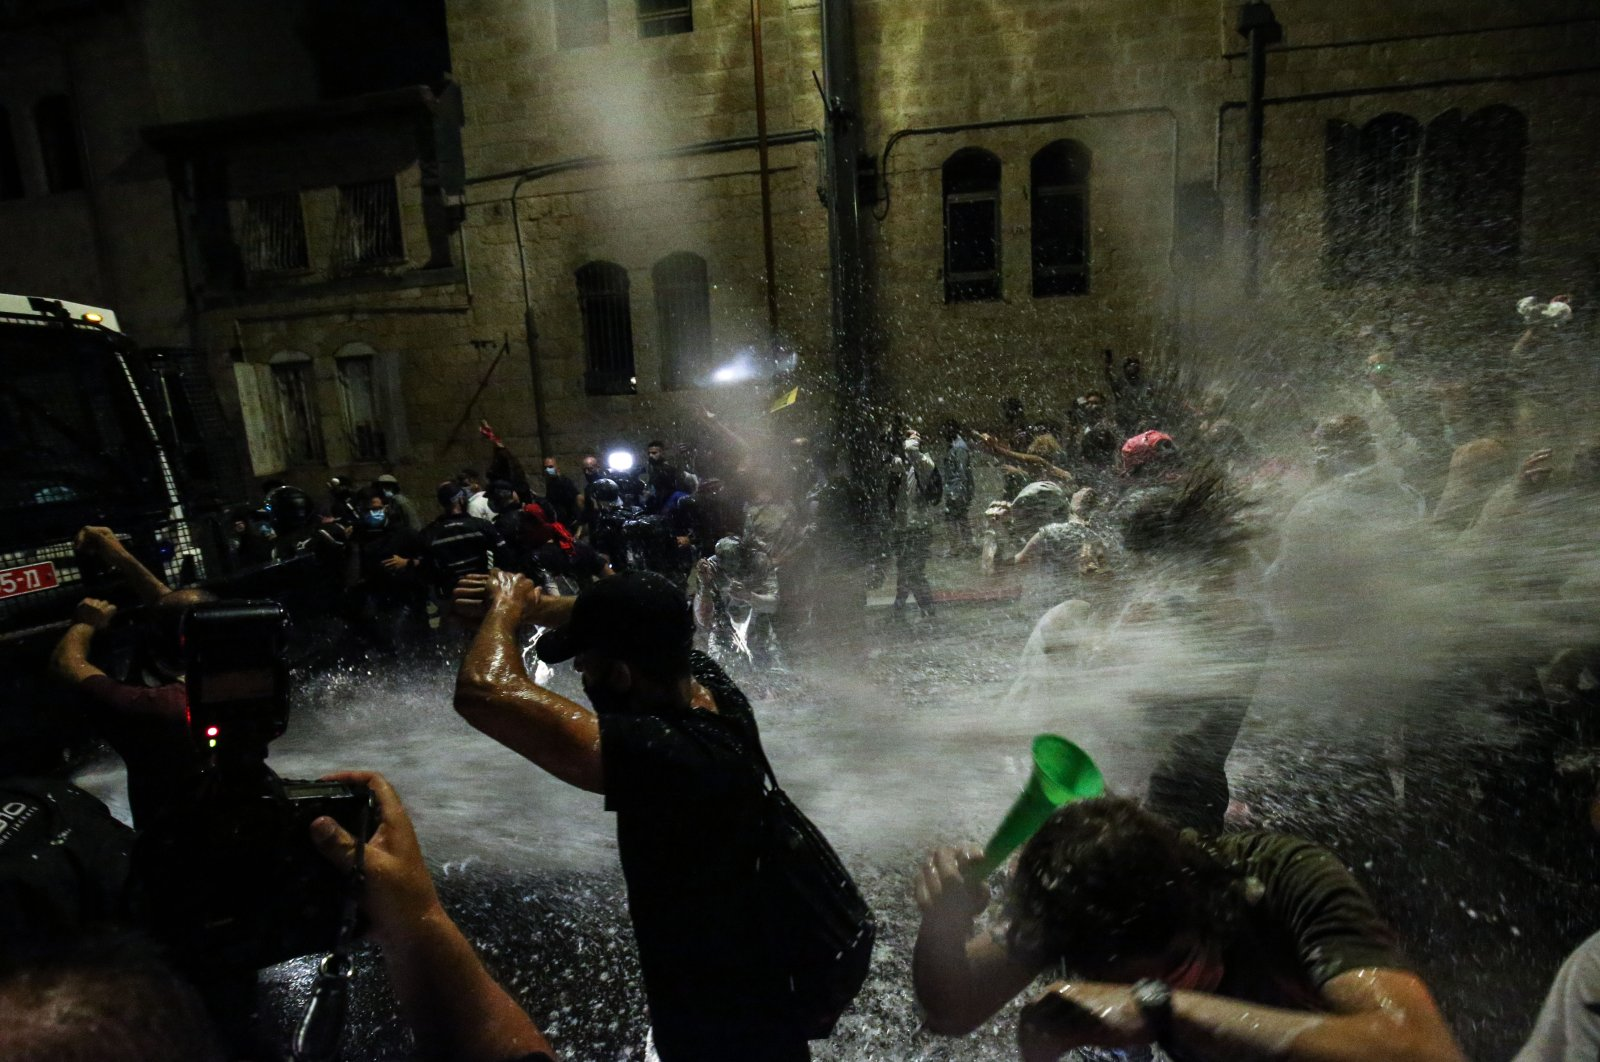 Israeli police use water cannons to disperse demonstrators protesting against the government response to the coronavirus pandemic in Jerusalem on July 18, 2020. (AA Photo)